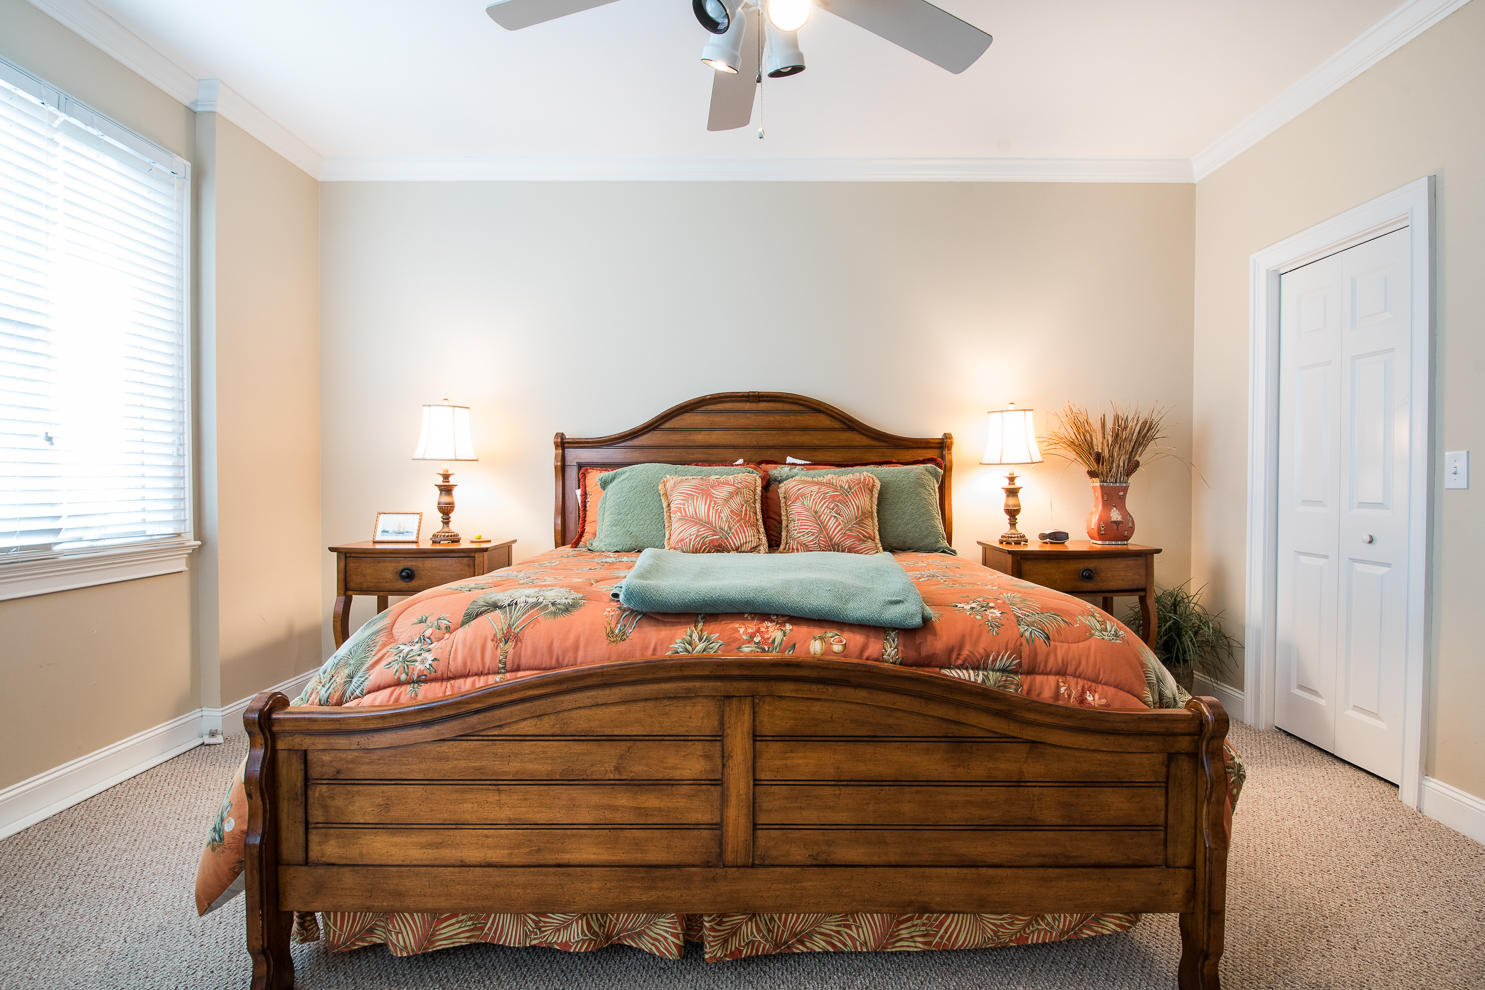 Tolers Cove Homes For Sale - B-4 & B-5 Tolers Cove Marina 70ft + Home, Mount Pleasant, SC - 5